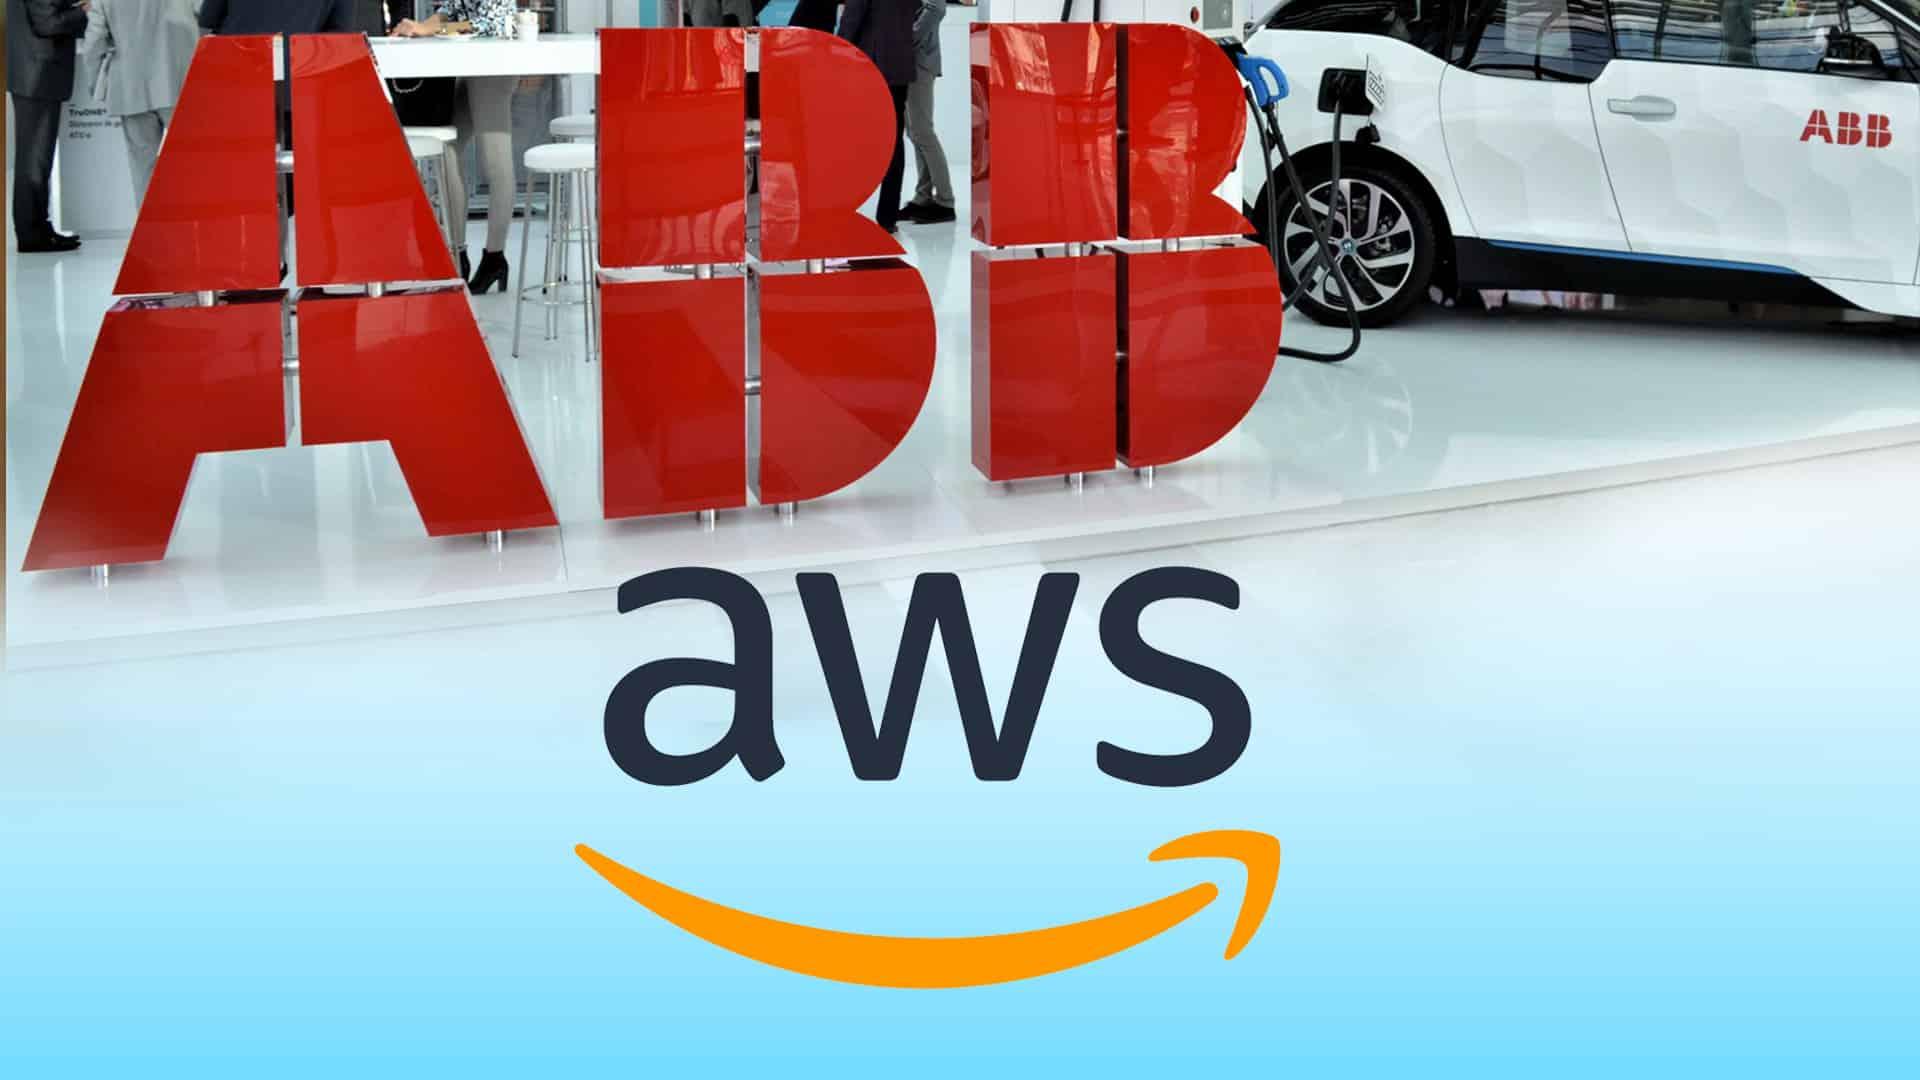 ABB and Amazon Web Services steer fleets to an all-electric future